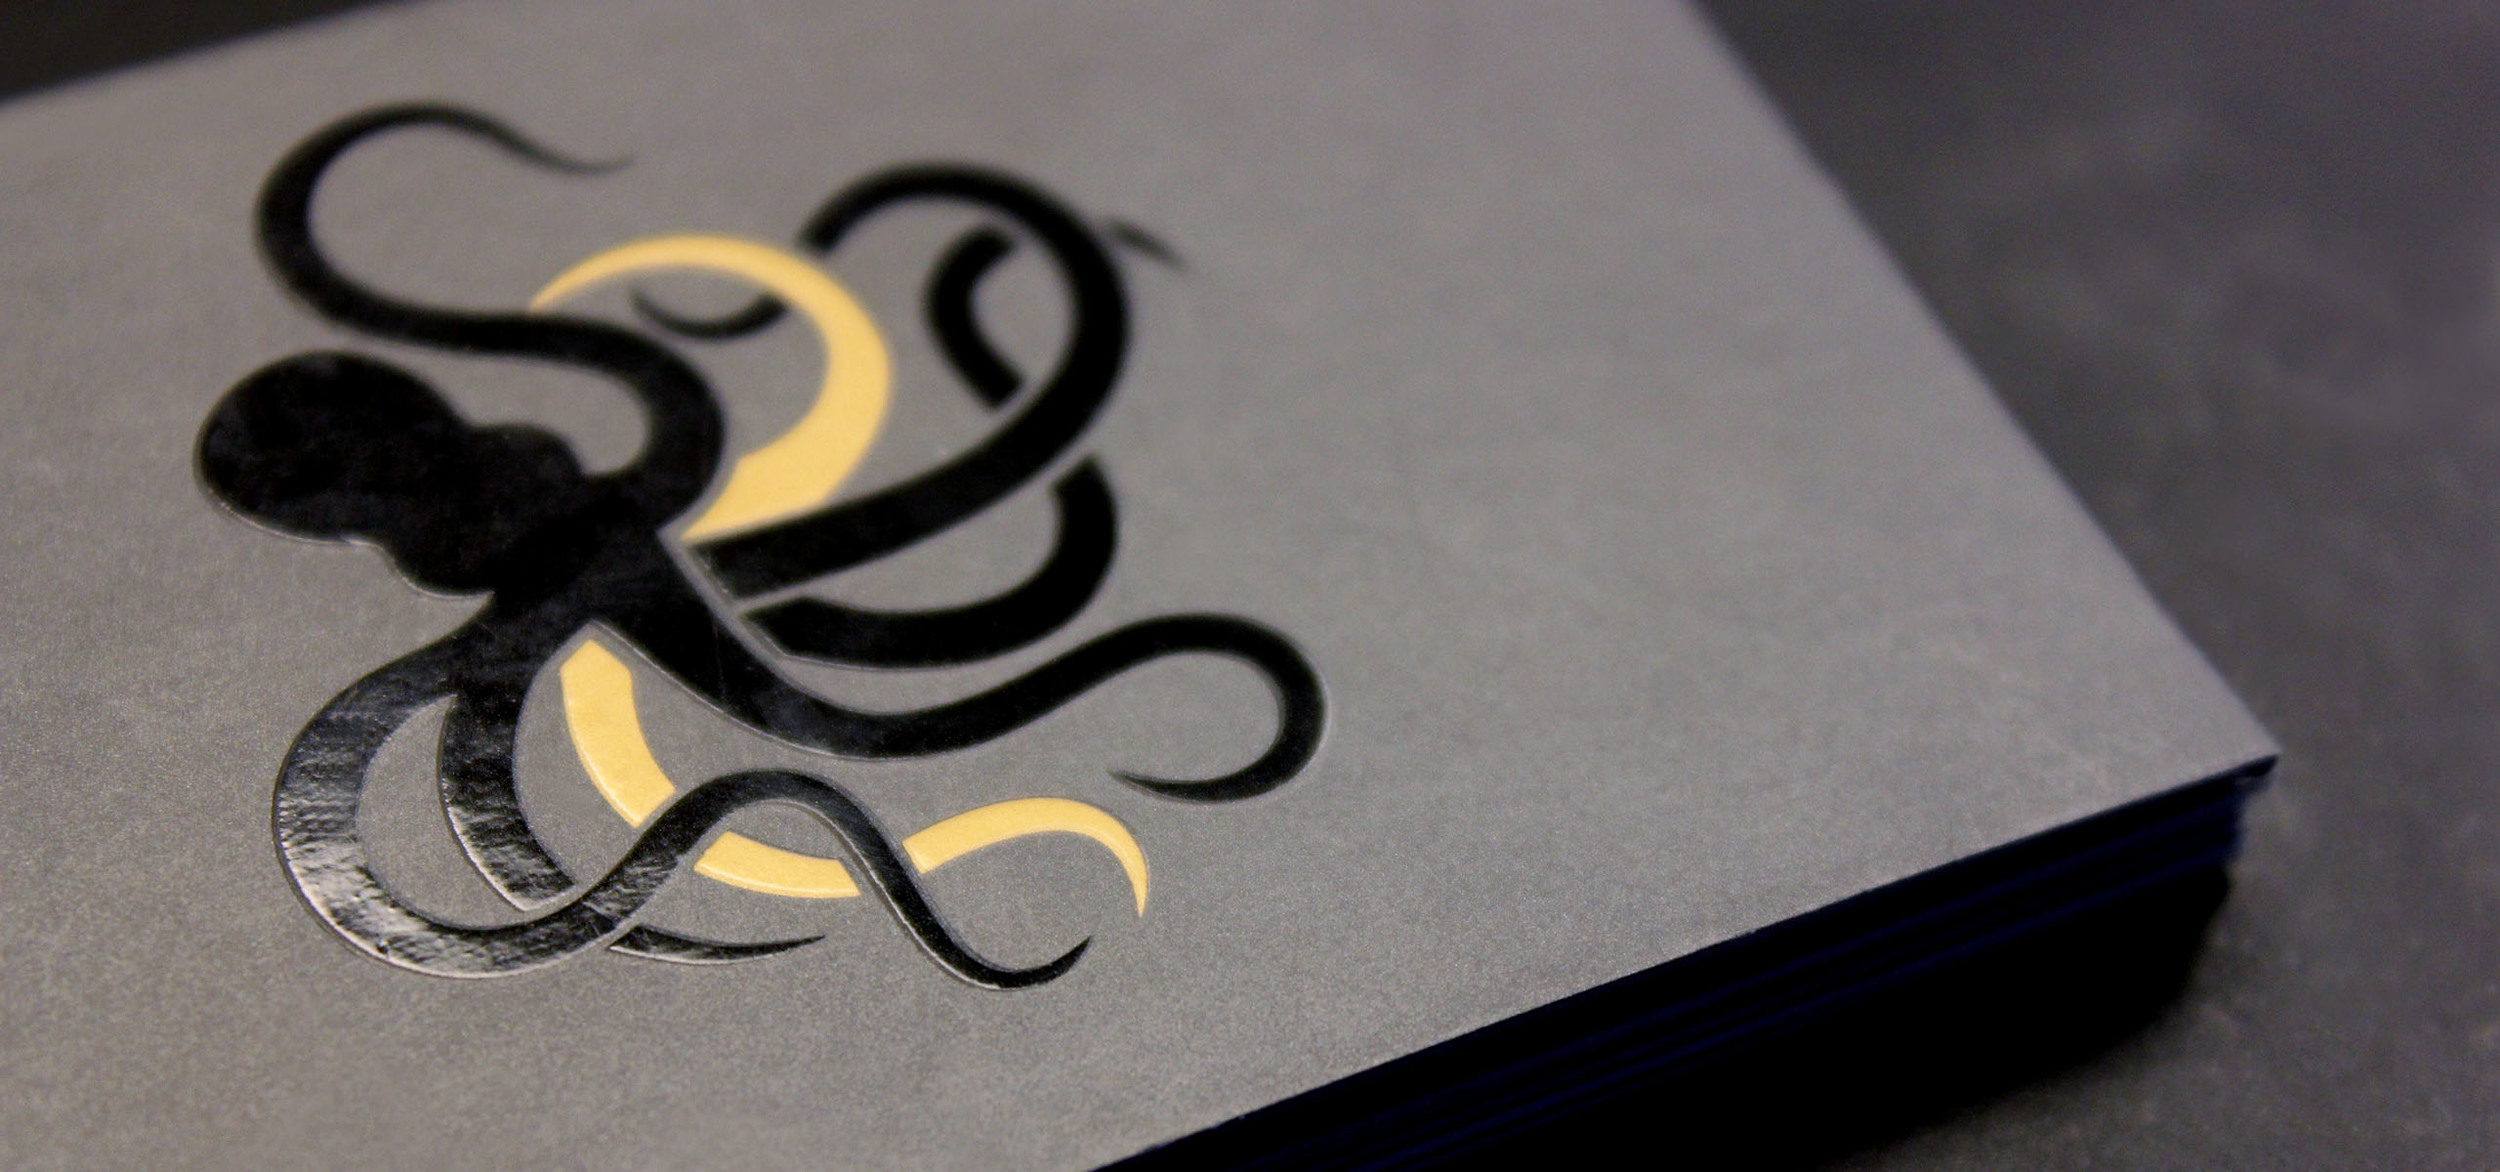 Graphic logo of Kraken Kapital on the backside of business cards as part of stationary design